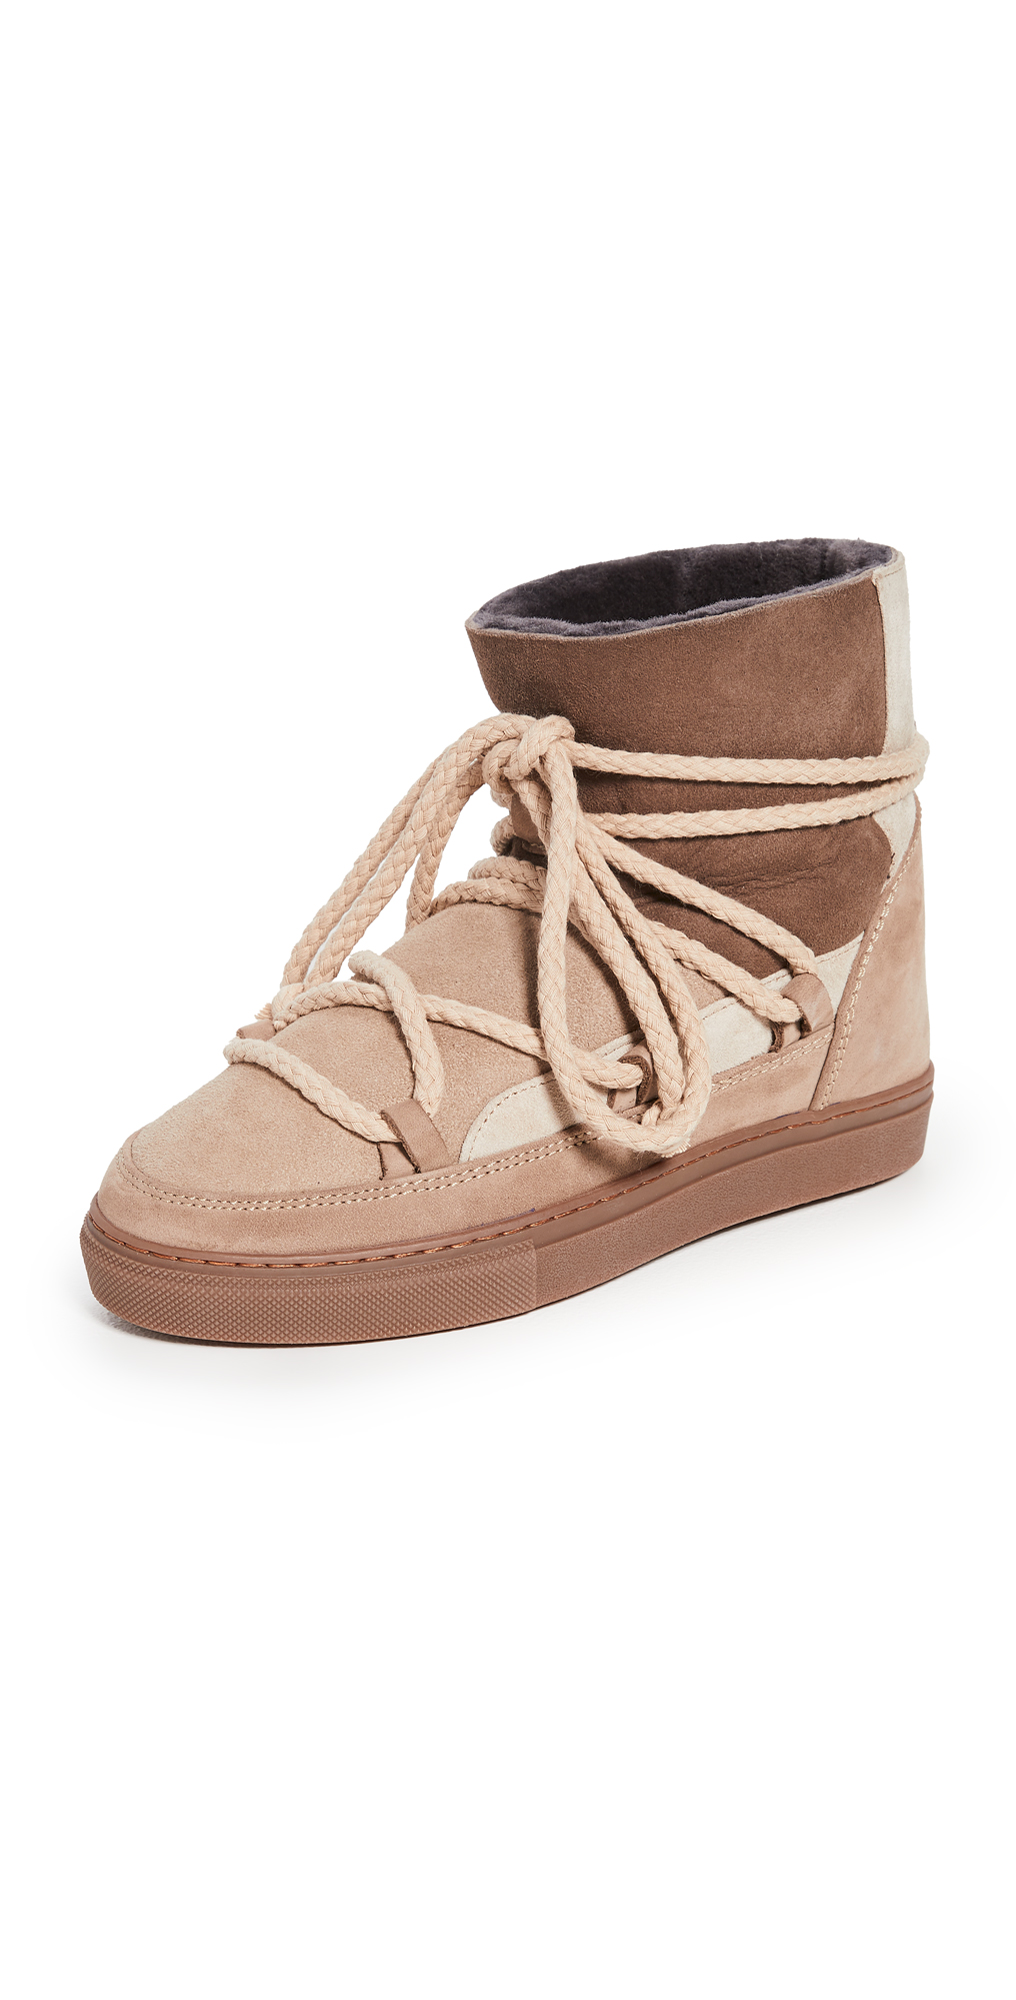 Patchwork Shearling Sneakers